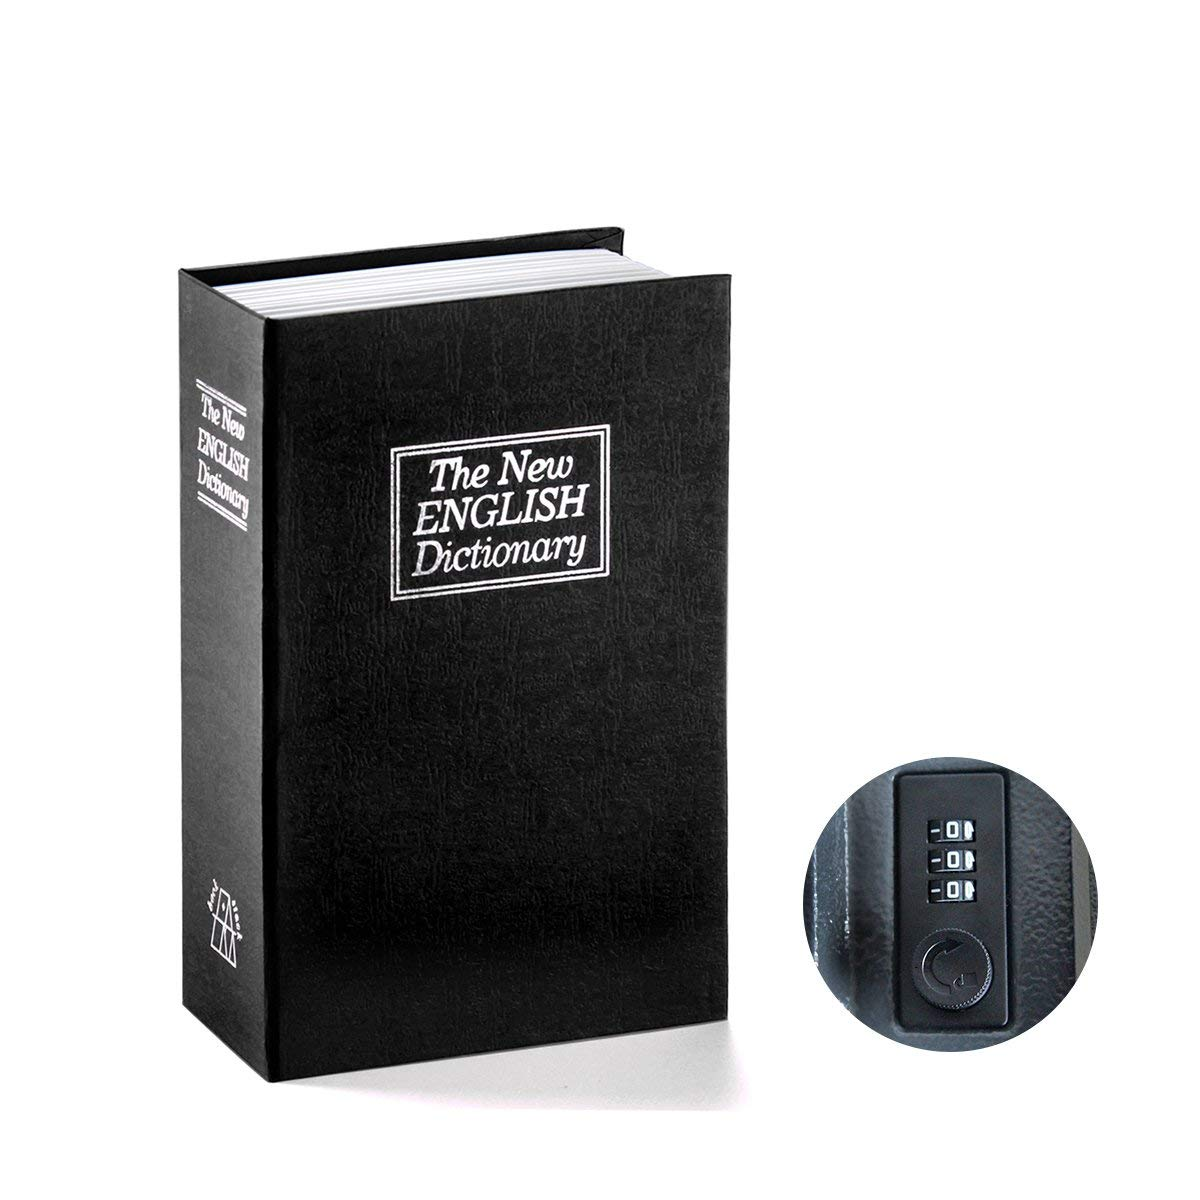 Book Safe With Combination Lock Dictionary Diversion Book Safe Portable Safe Box, Great For Storing Money Jewelry Passport